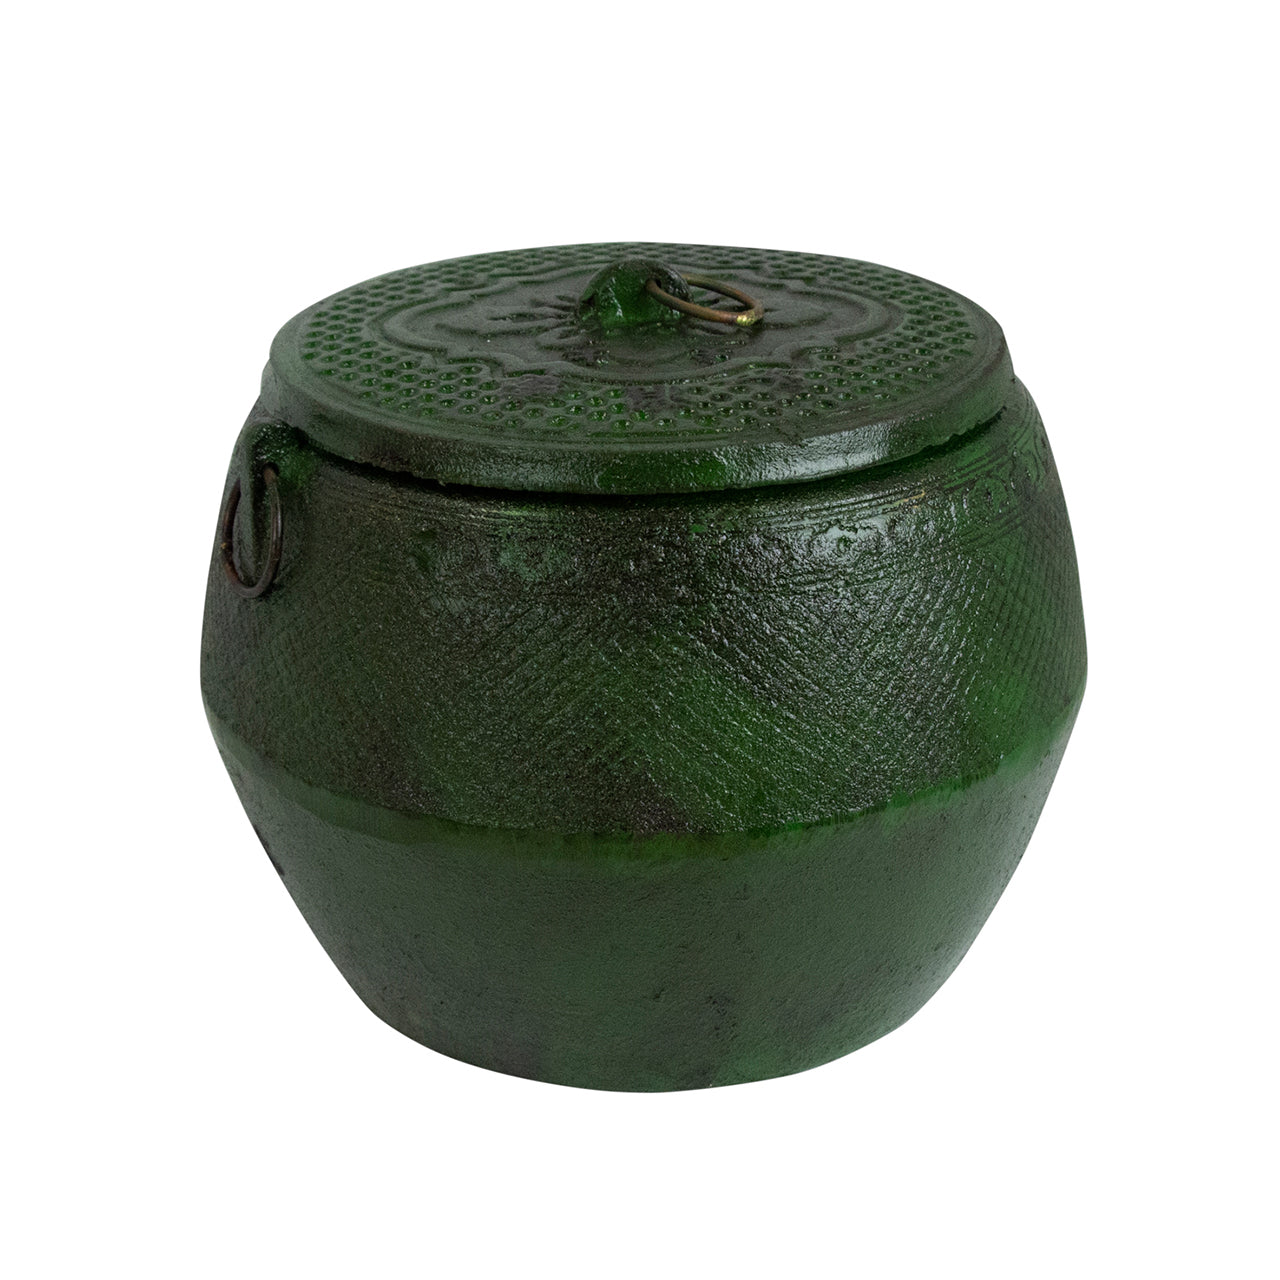 Charcoal Extinguish Pot (SKU: 2129)